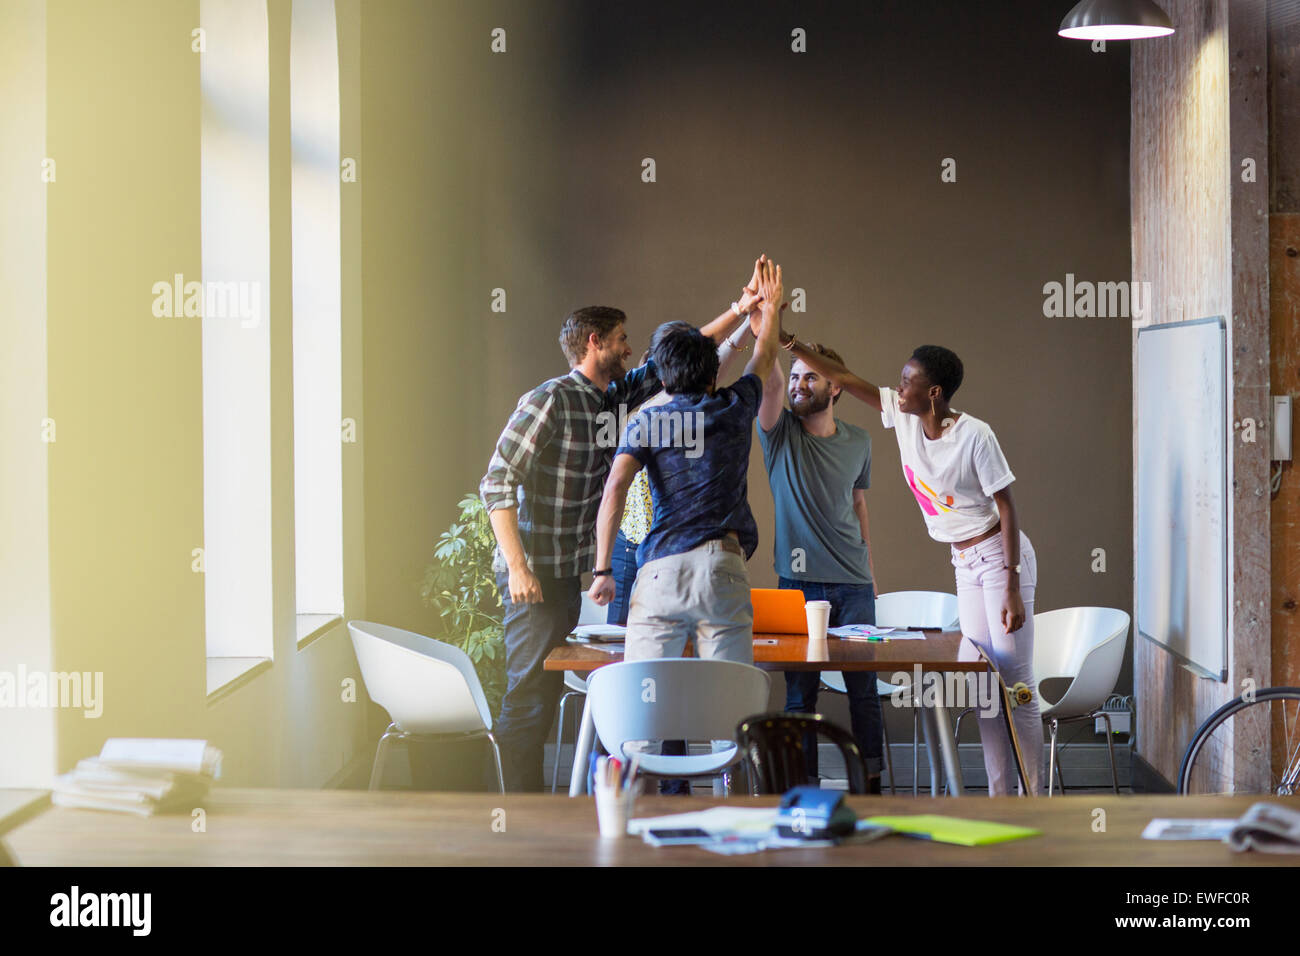 Creative business people joining hands at table in office - Stock Image